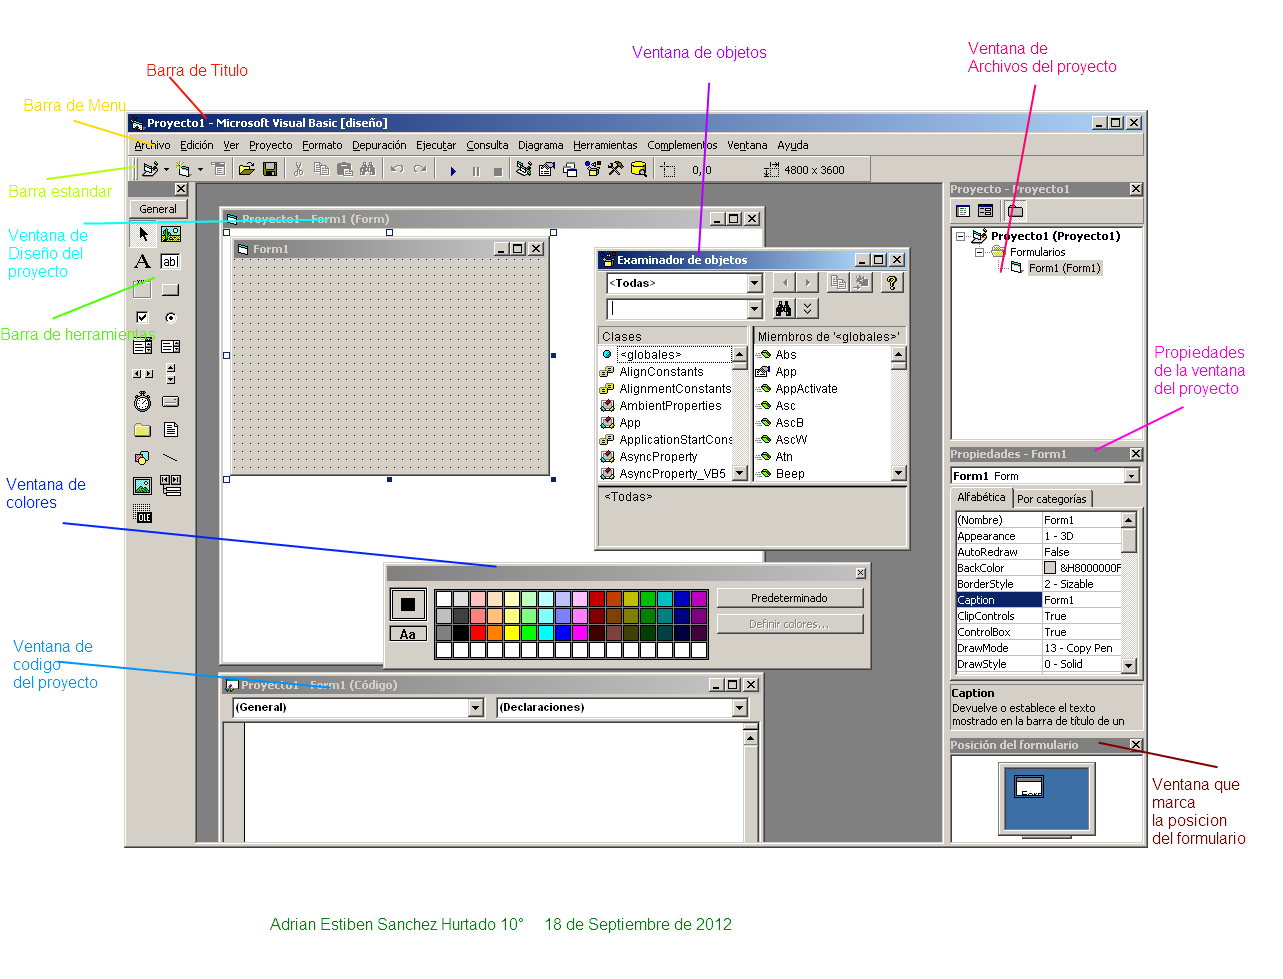 visual basic 6 0 tool bar: